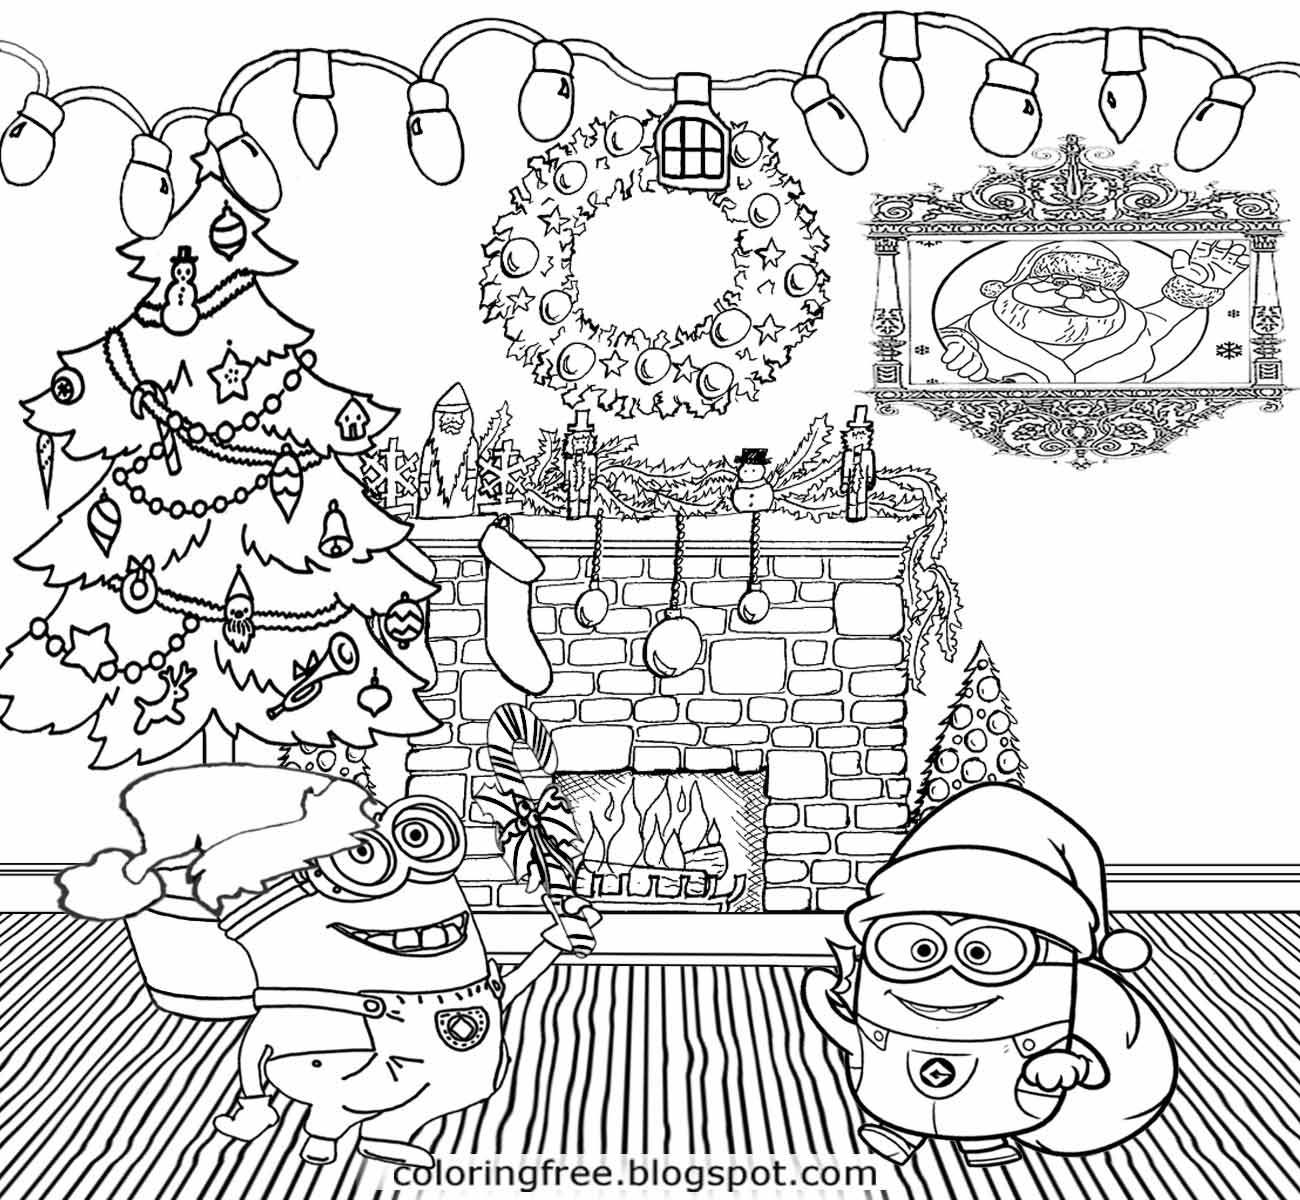 Christmas Coloring Pages Minion With Printable Free And Color Online Runninggames Me